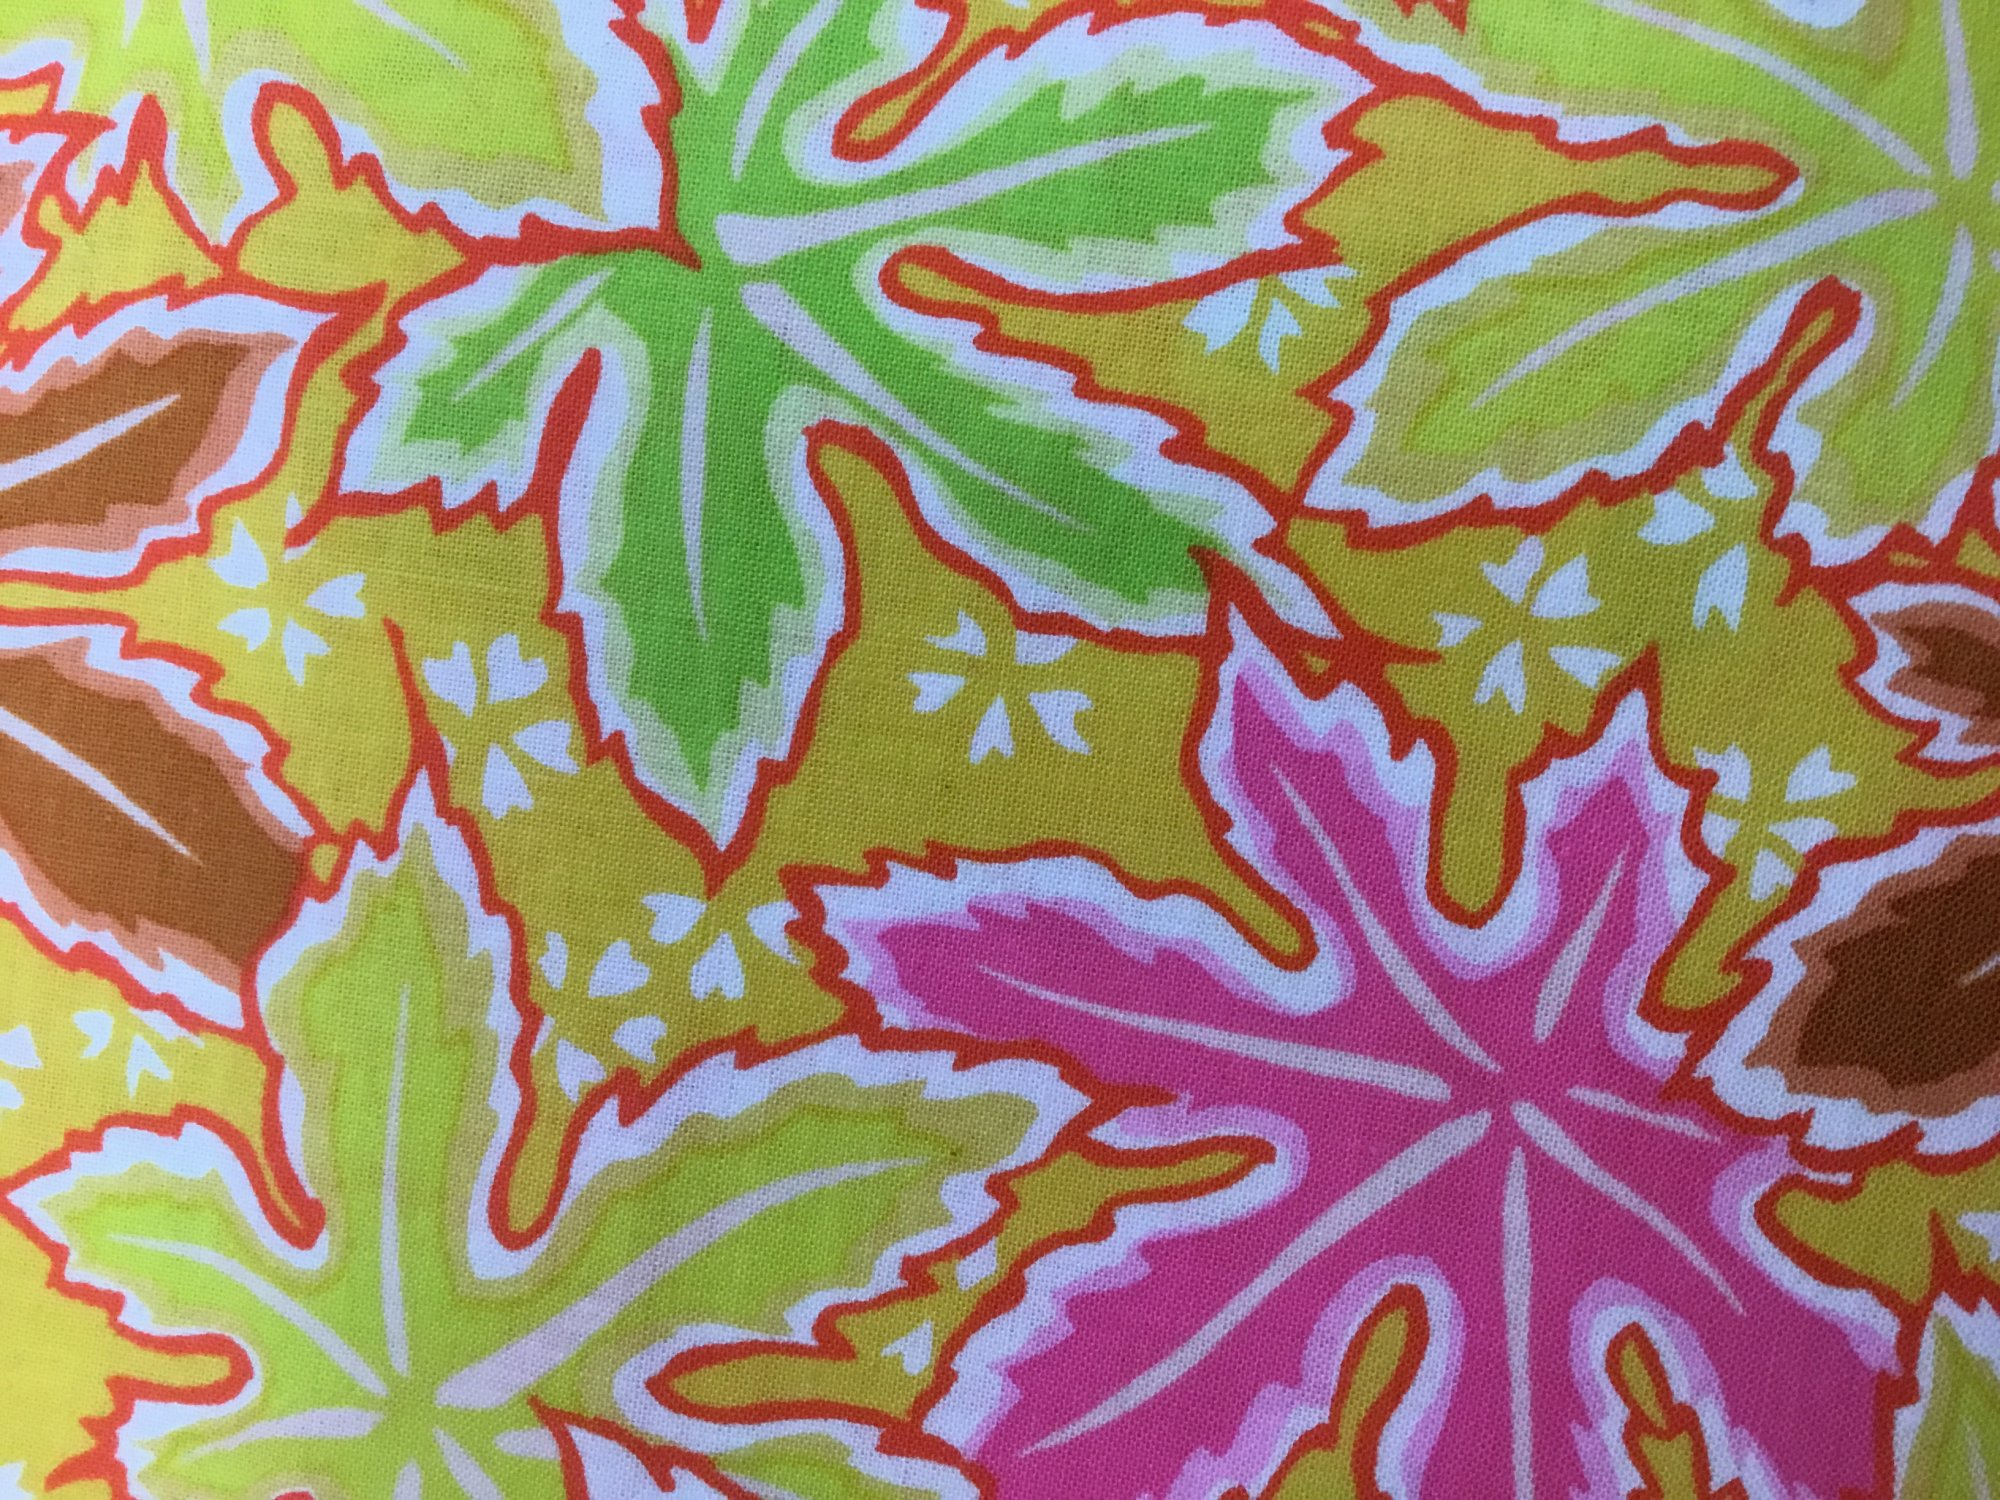 KAFFE FASSETT Philip Jacobs - Spring 2018 - Lacy Leaf - Yellow